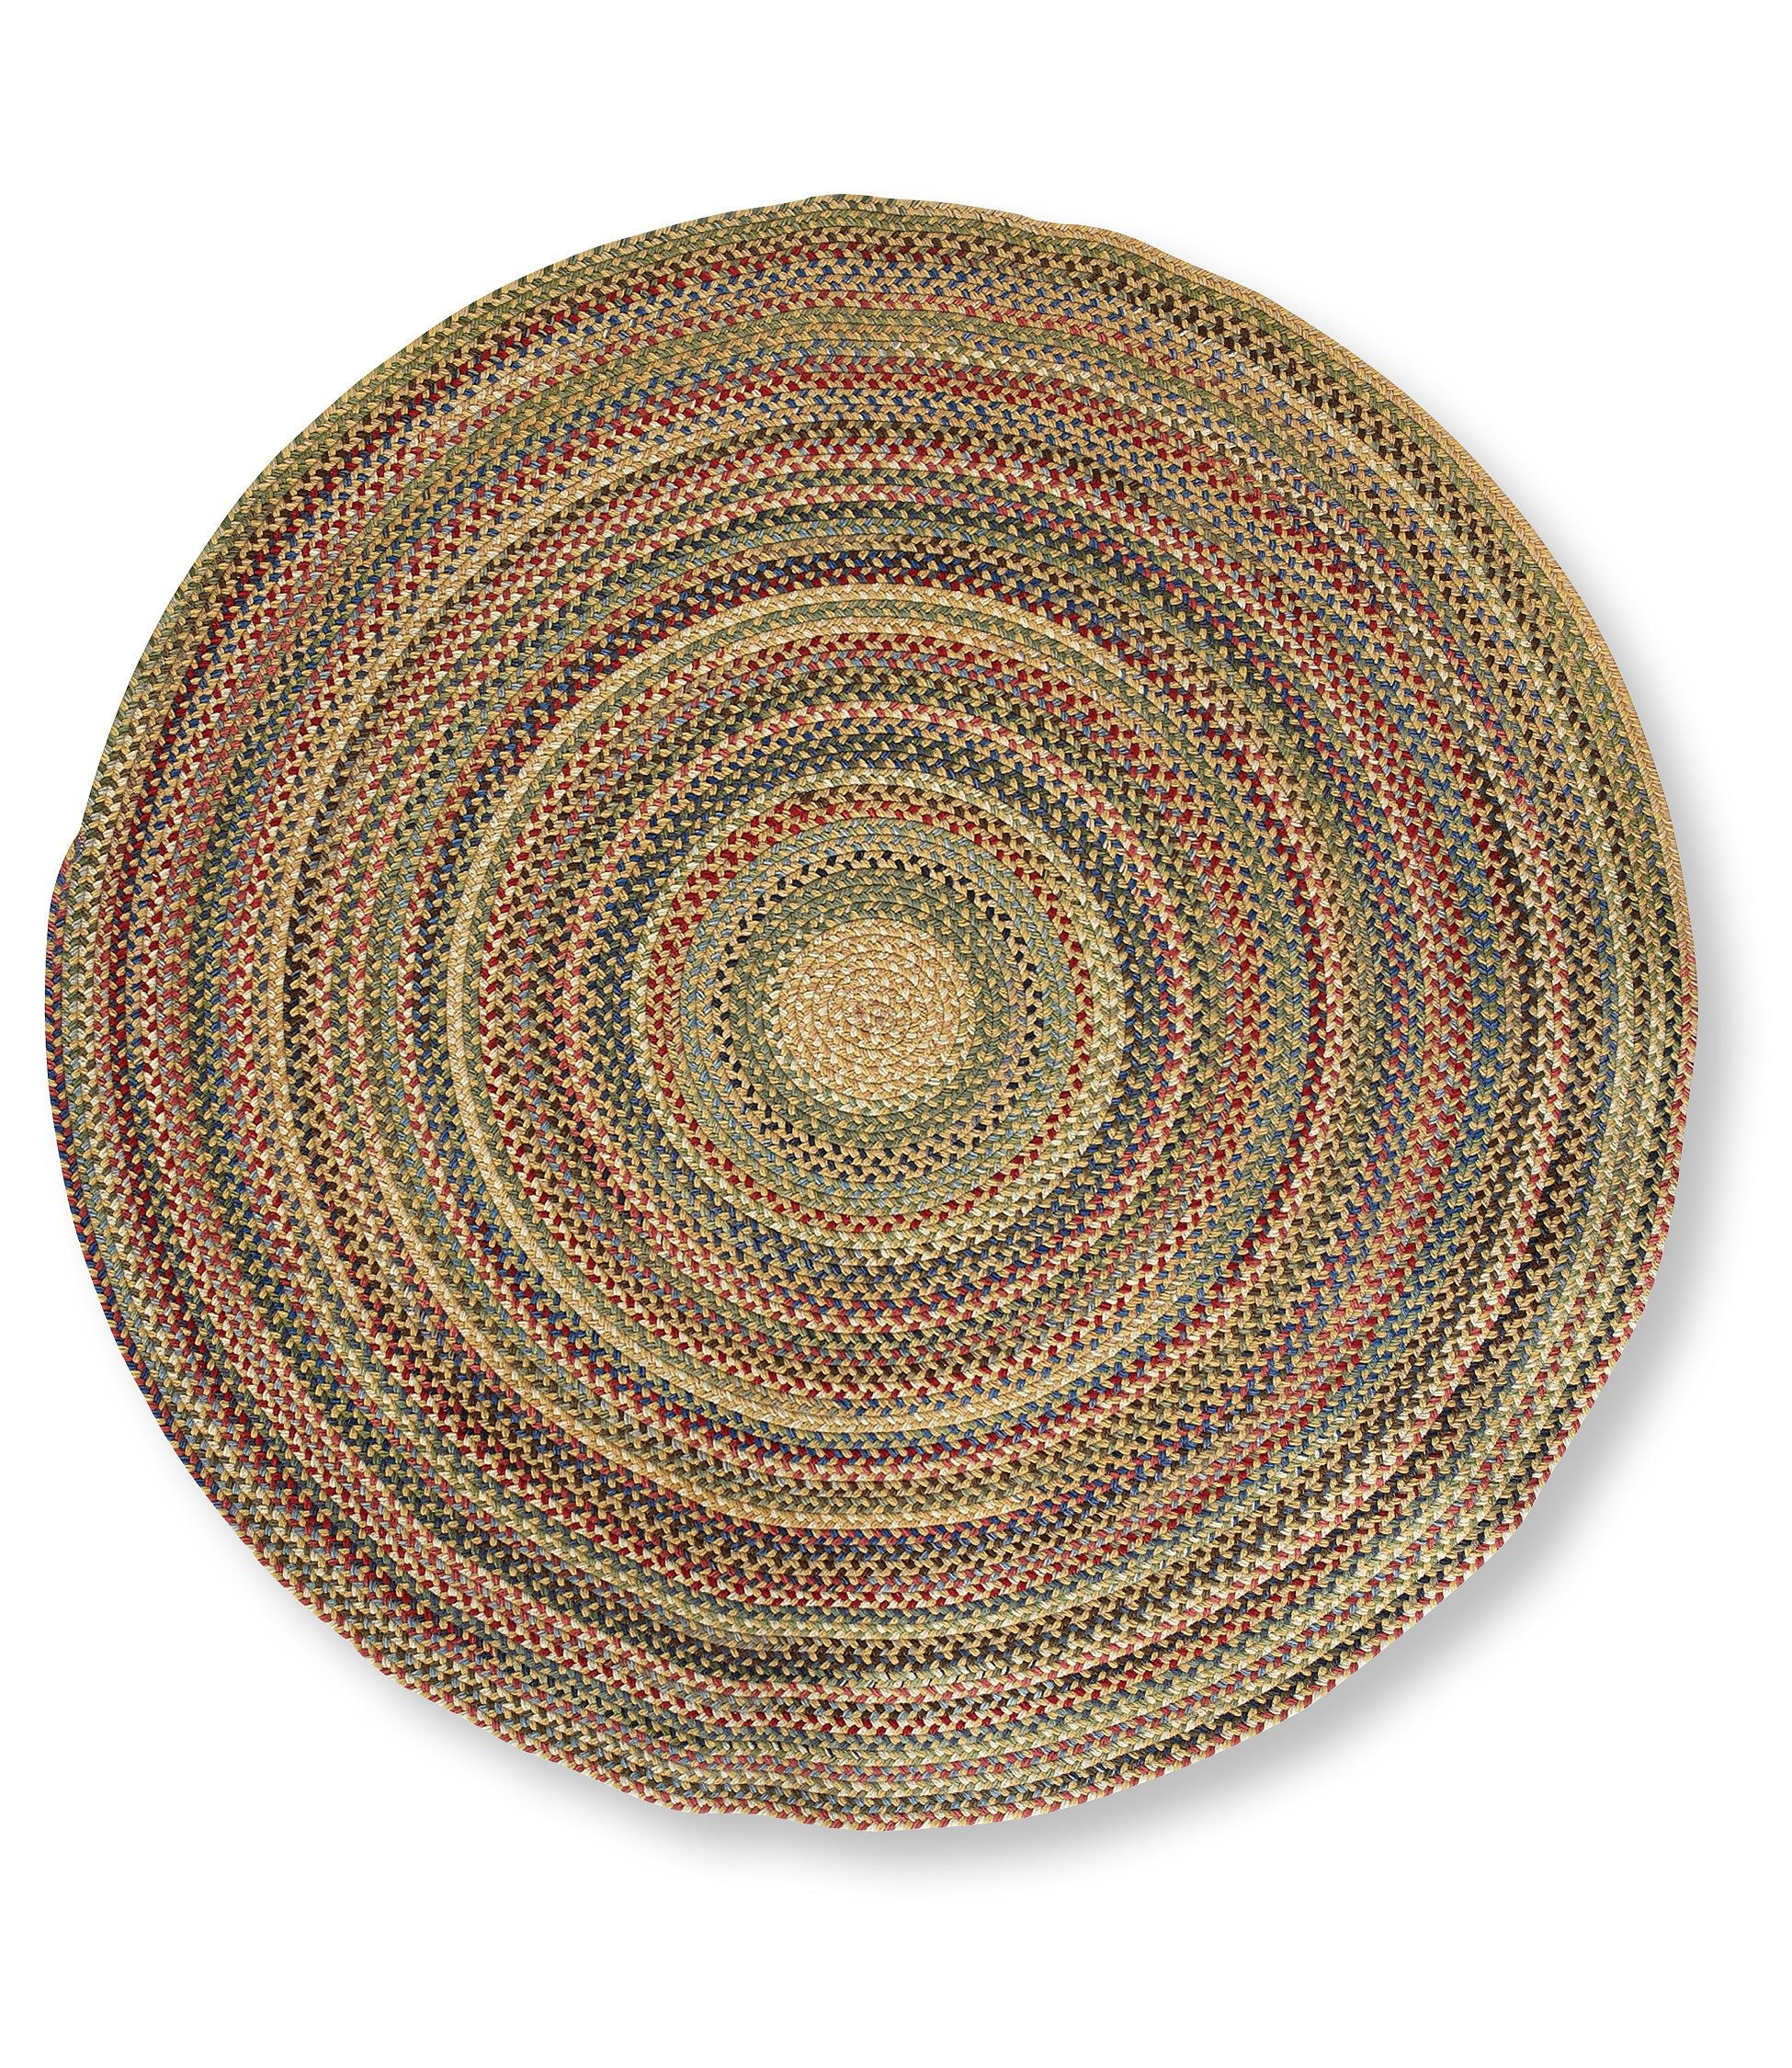 Braided Rug Pad: Bean's Braided Wool Rug, Round: Rugs And Rug Pads At L.L